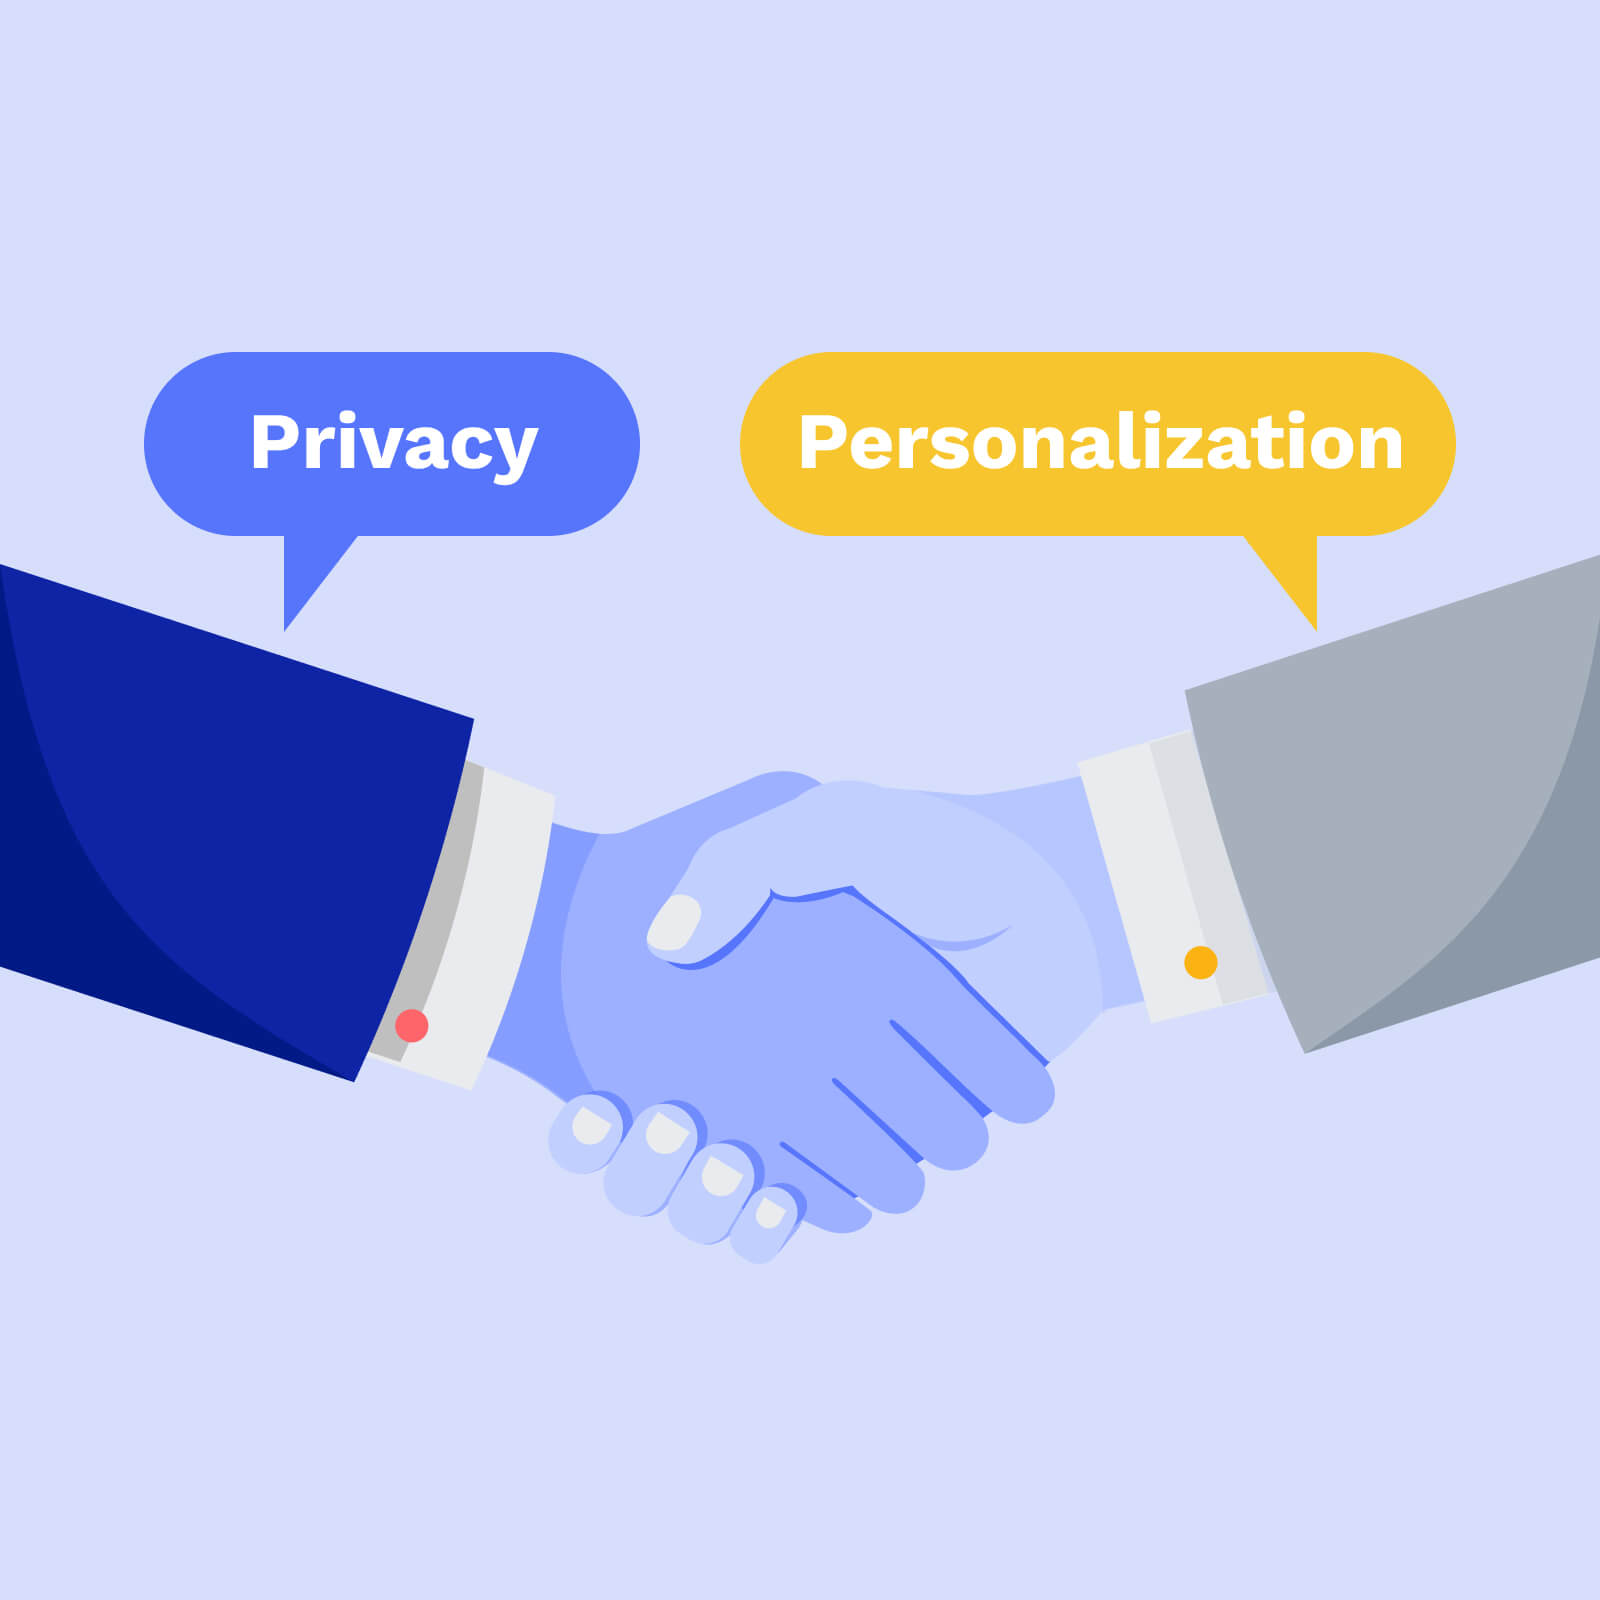 Personalization and Privacy Working Together